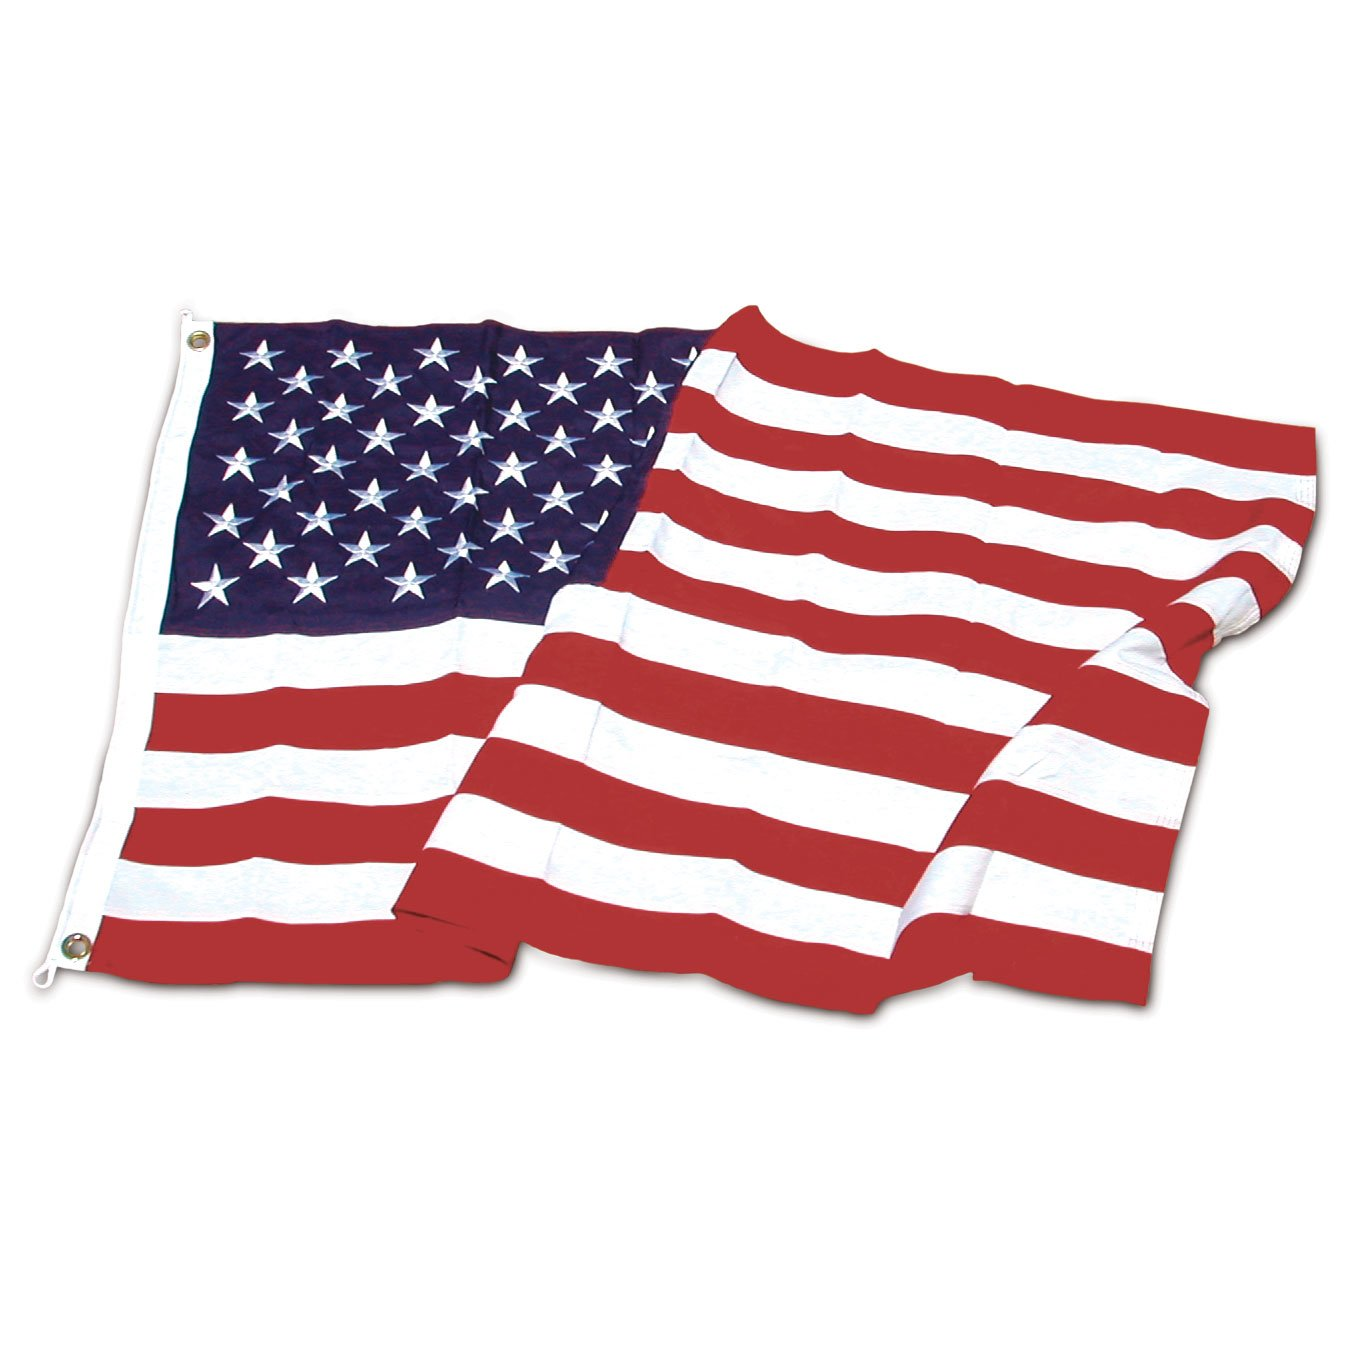 amazon com us flag store sewn polyester us flag 6 feet by 10